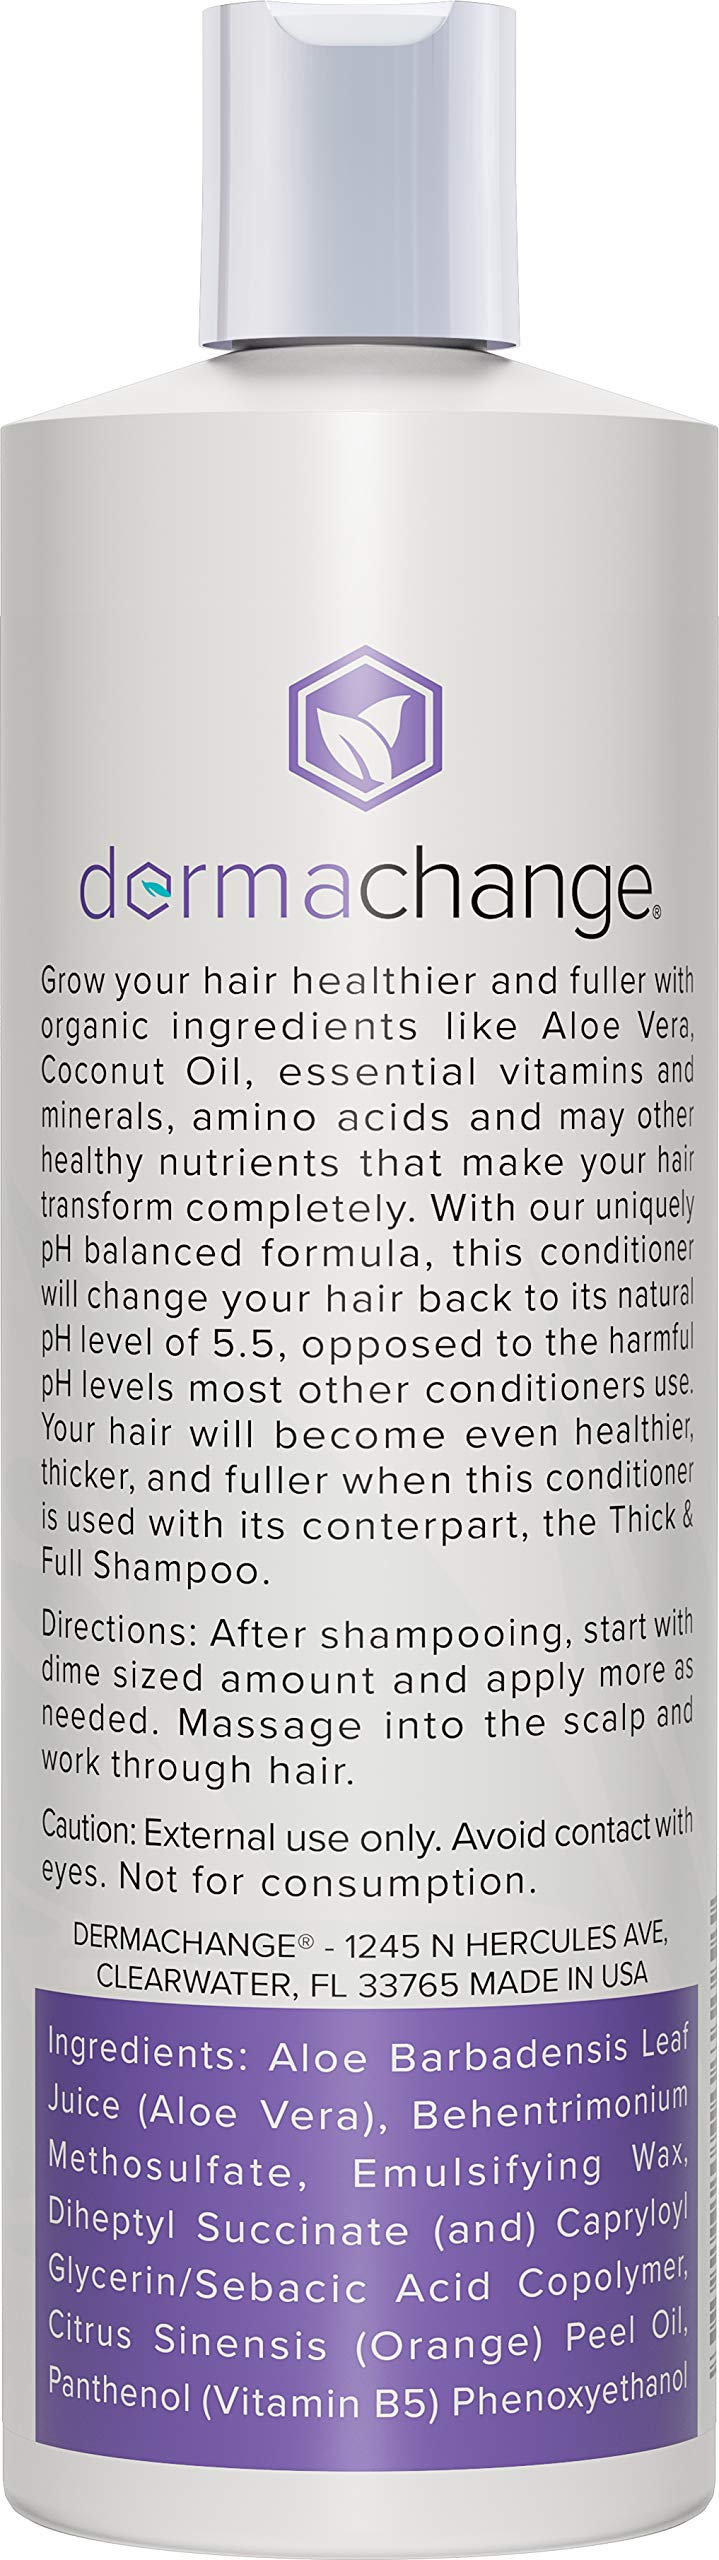 Hair Growth Organic Conditioner - Grow Hair Fast - Sulfate Free - Best Hair Products With Vitamins - Prevent Hair Loss - Helps Dermatitis - For Women and Men - Made in USA, 16 fl.oz.(473ml) by DermaChange (Image #2)